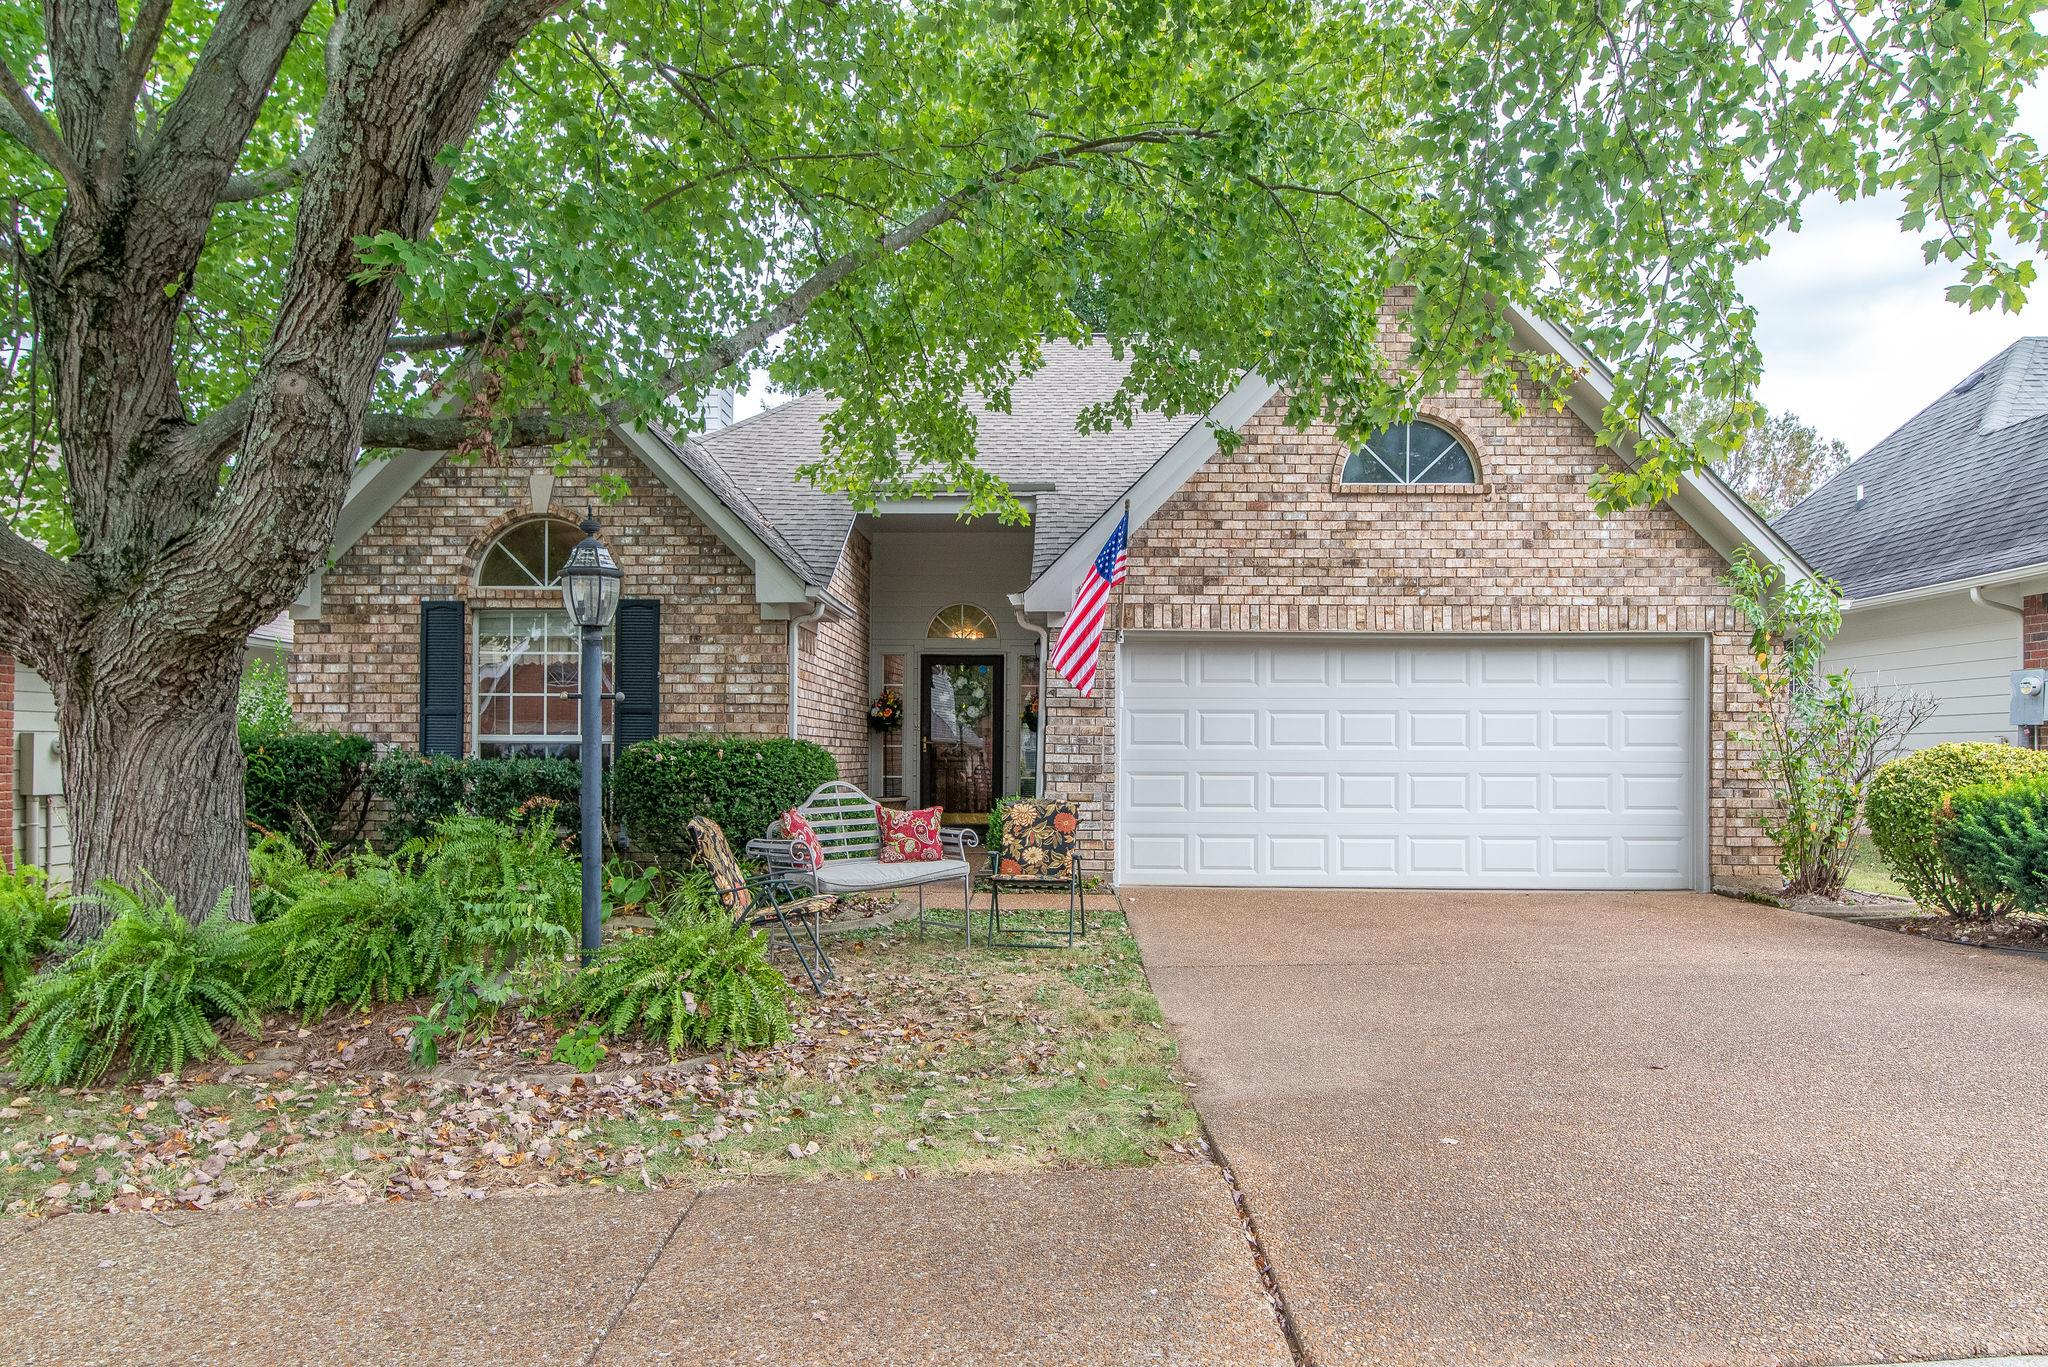 2716 Fleet Dr, Hermitage in Davidson County County, TN 37076 Home for Sale